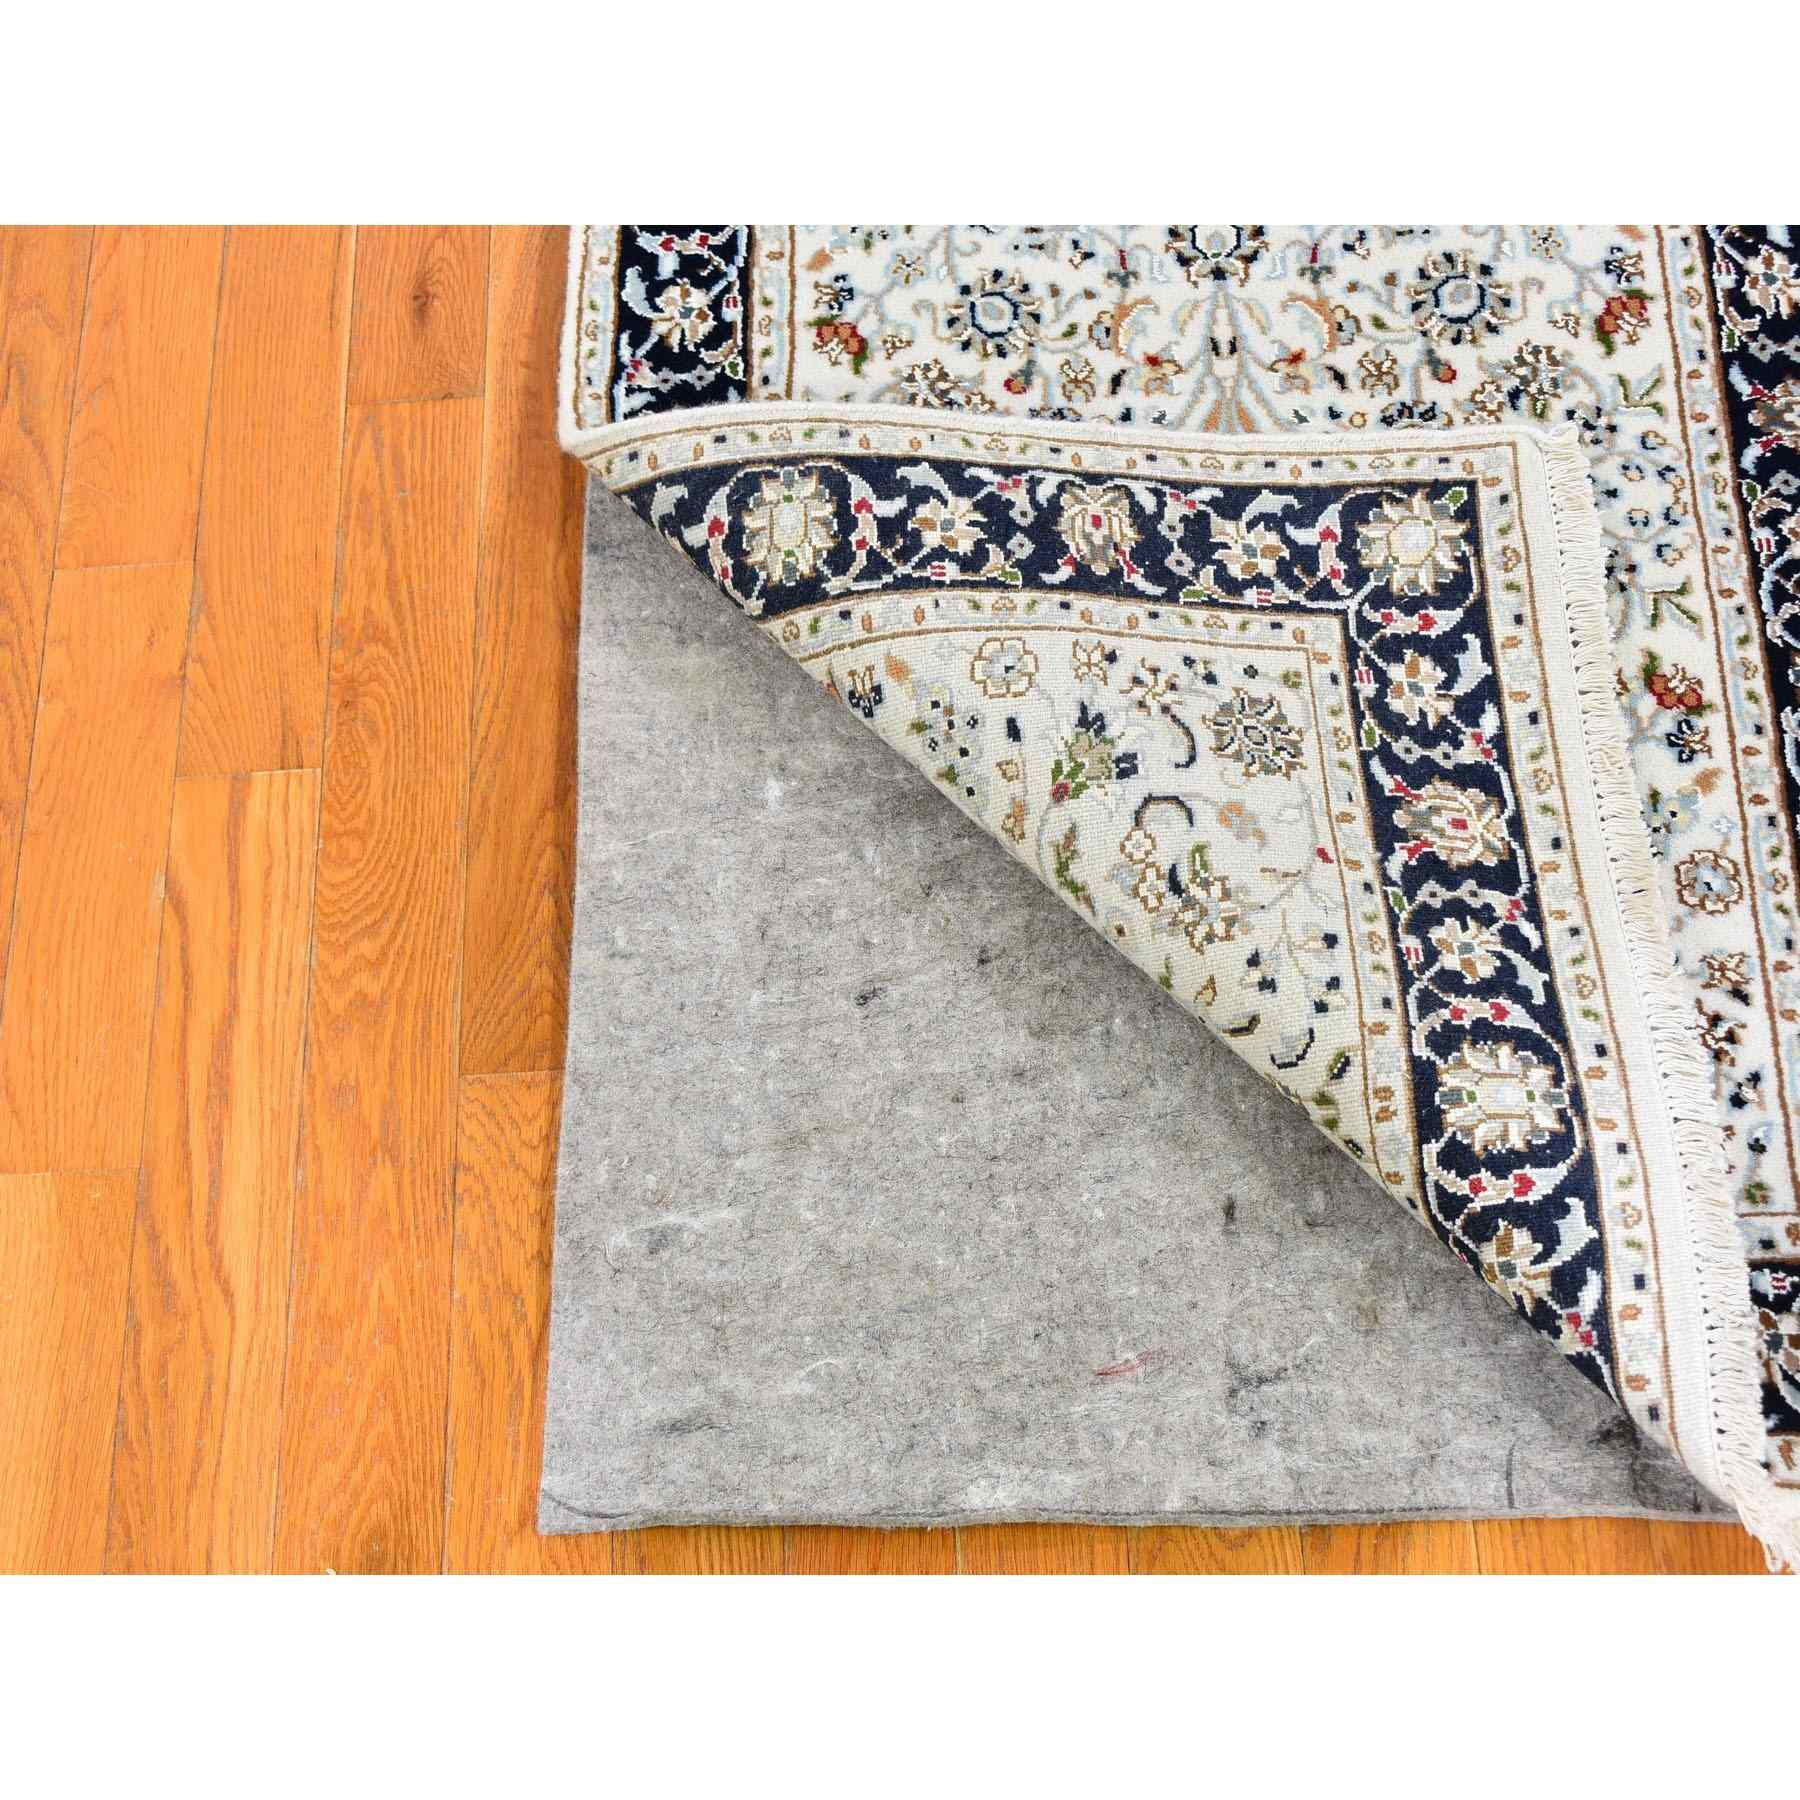 Fine-Oriental-Hand-Knotted-Rug-298160